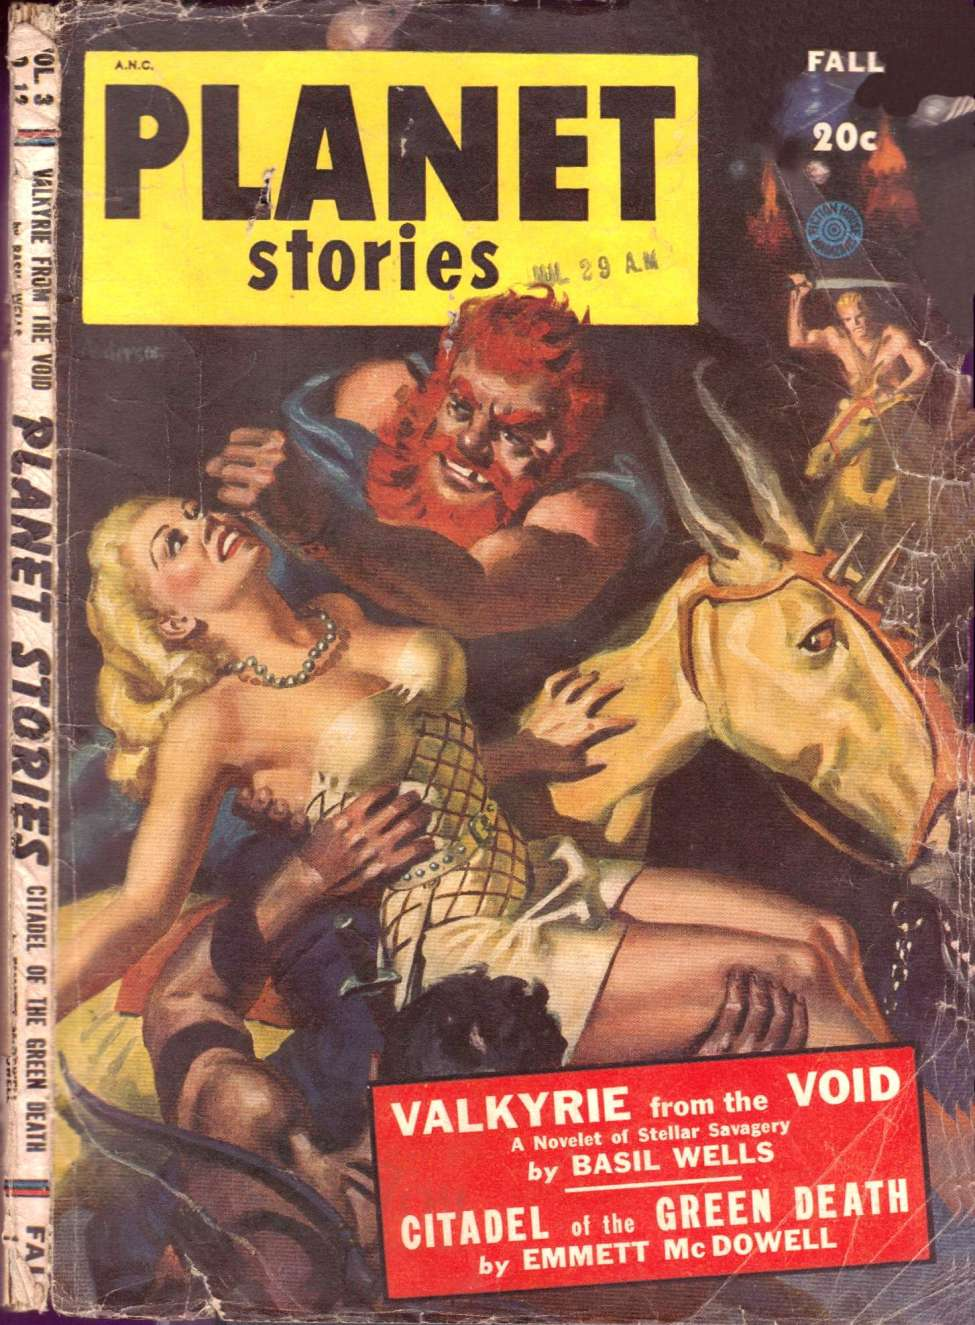 Comic Book Cover For Planet Stories v03 12 - Valkyrie from the Void - Basil Wells